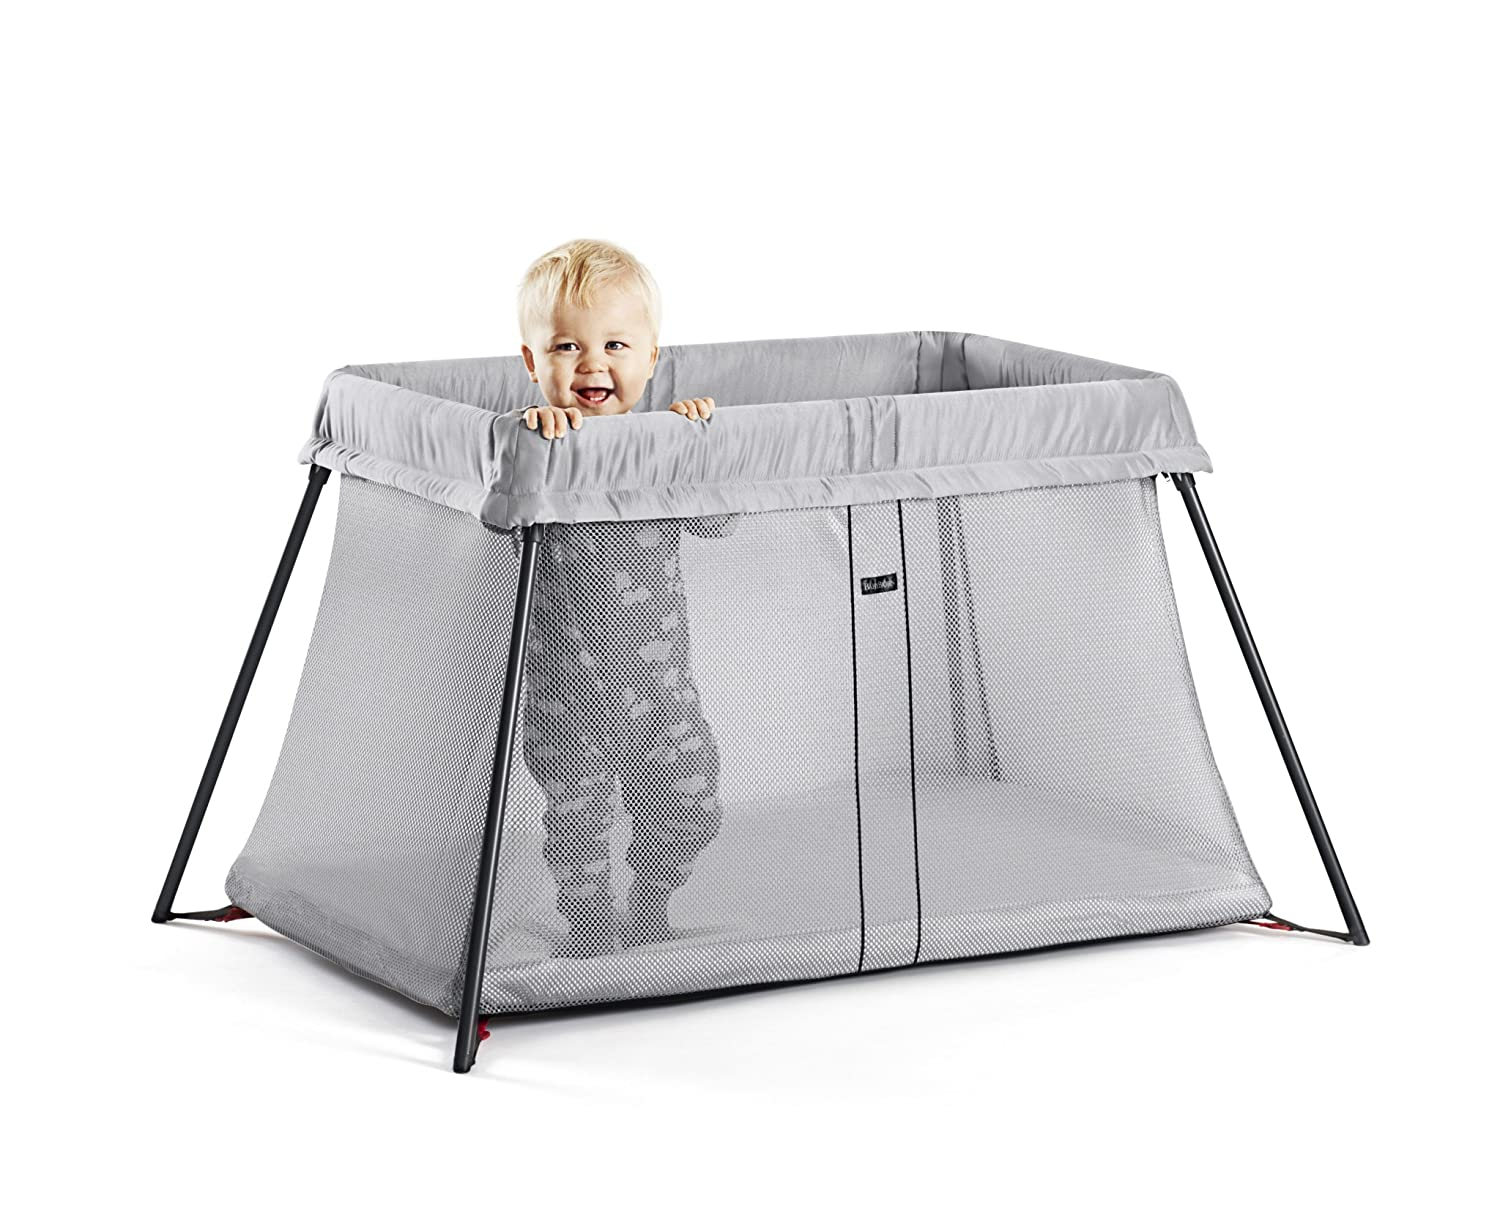 Gocrib adventure crib for sale - Gocrib Adventure Crib For Sale 12